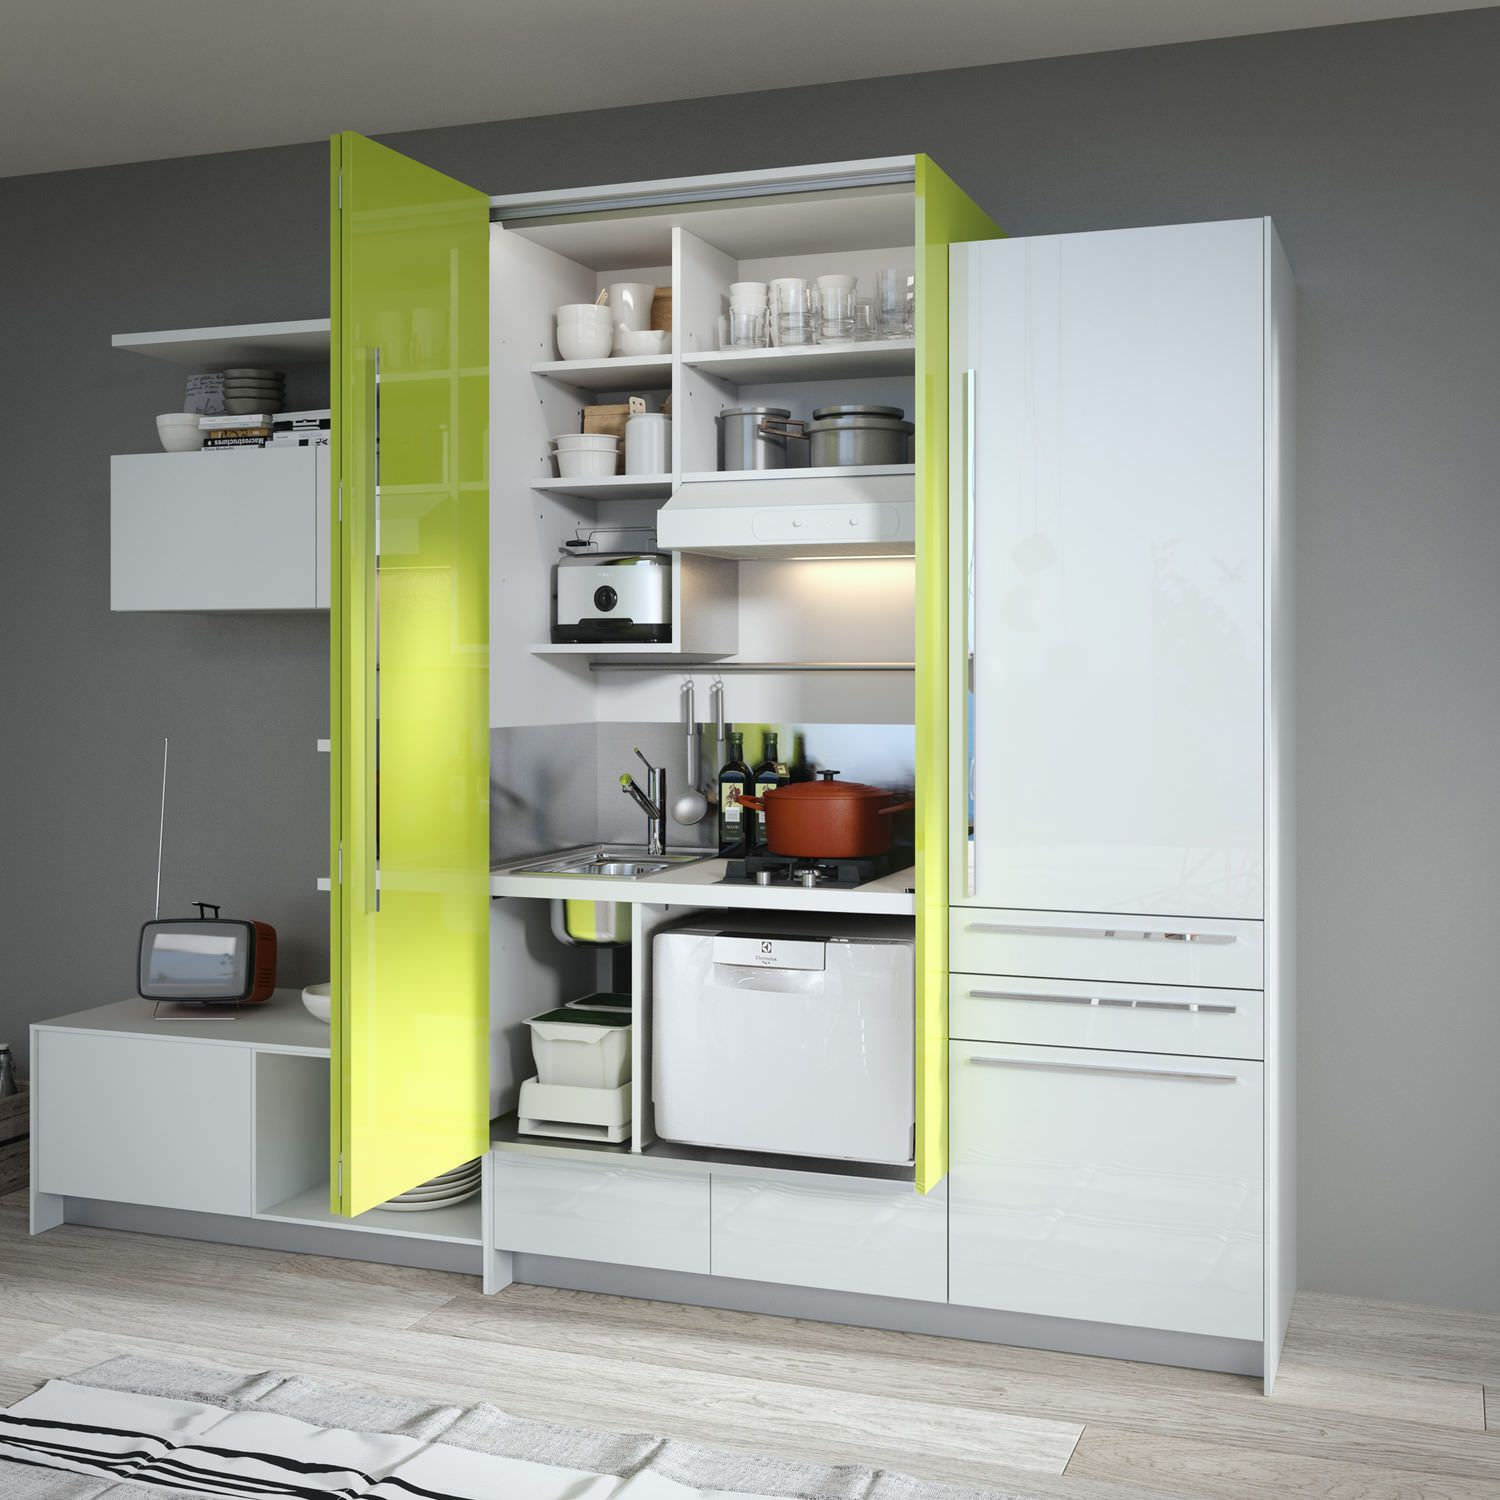 Loft Style Kitchen Design By Michele Marcon: Contemporary Lacquer Kitchen (with Island)